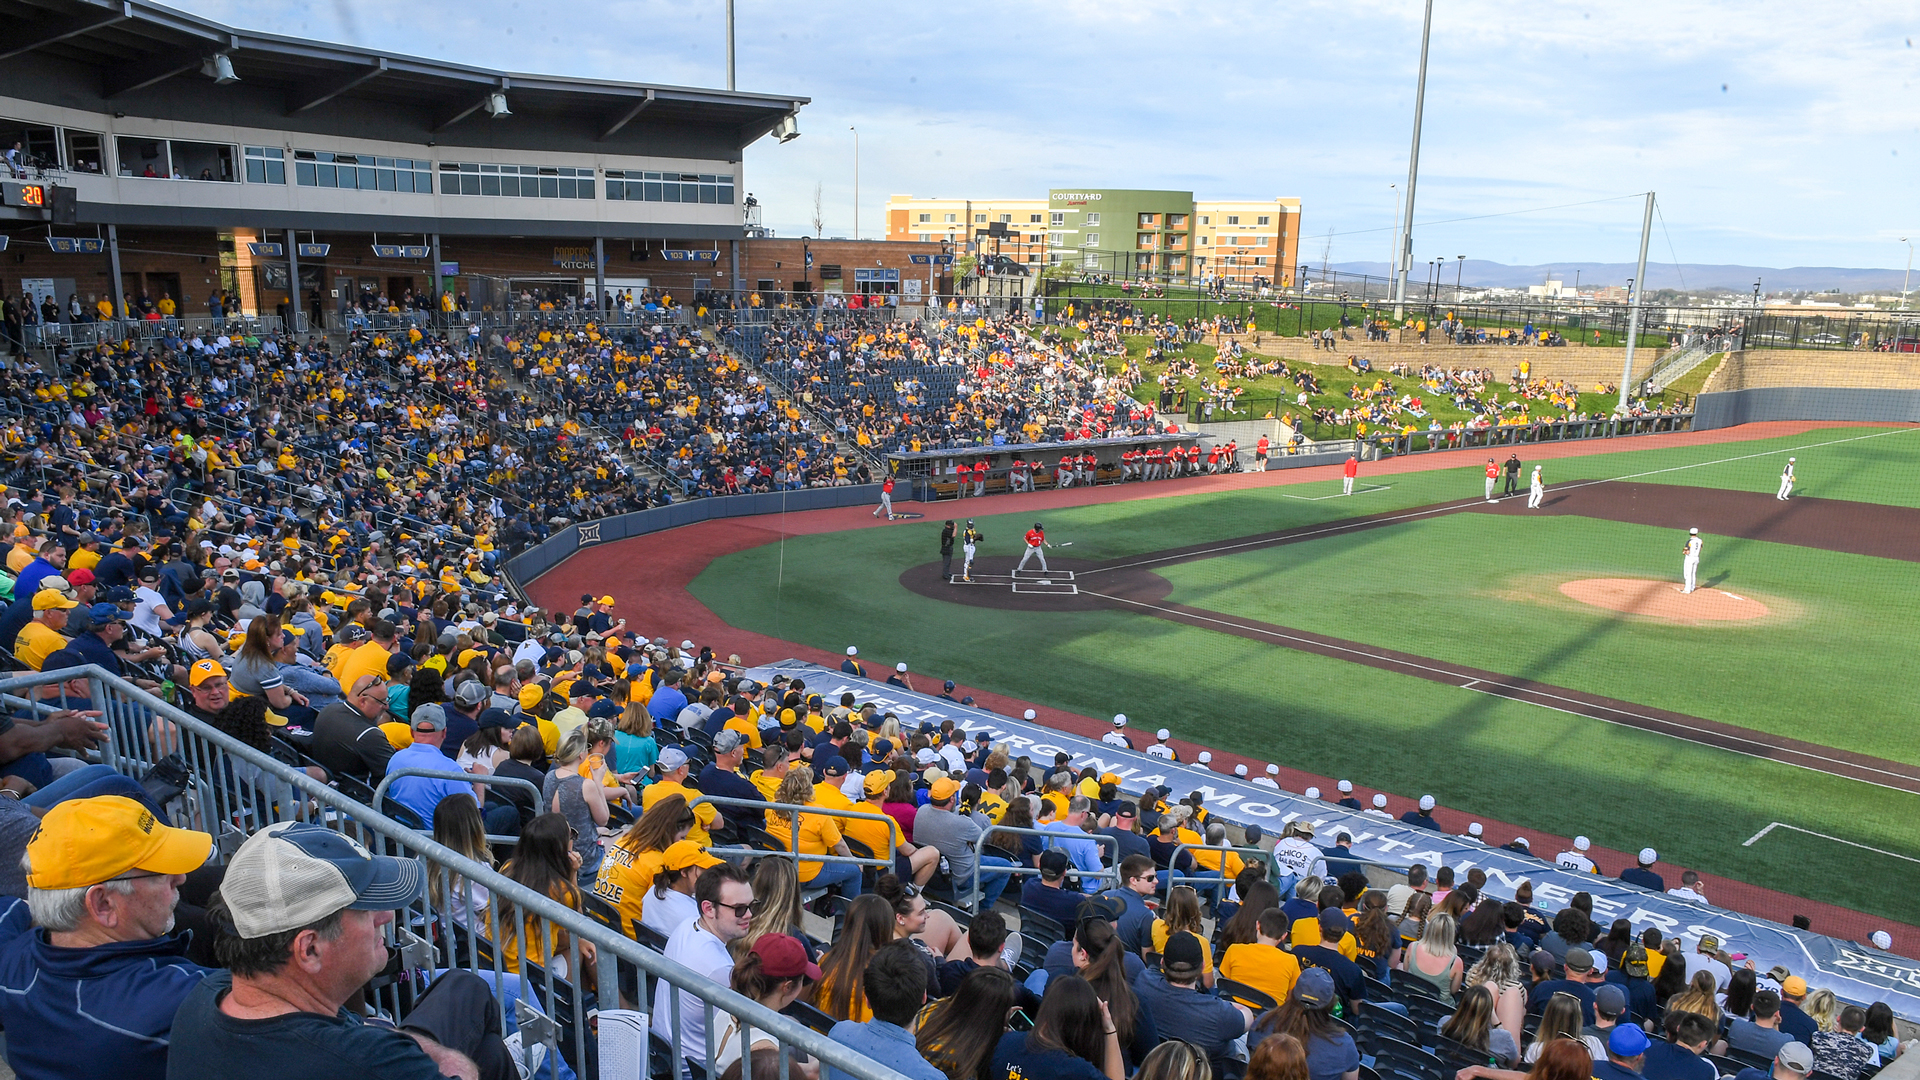 Monongalia County Ballpark - Facilities - West Virginia University